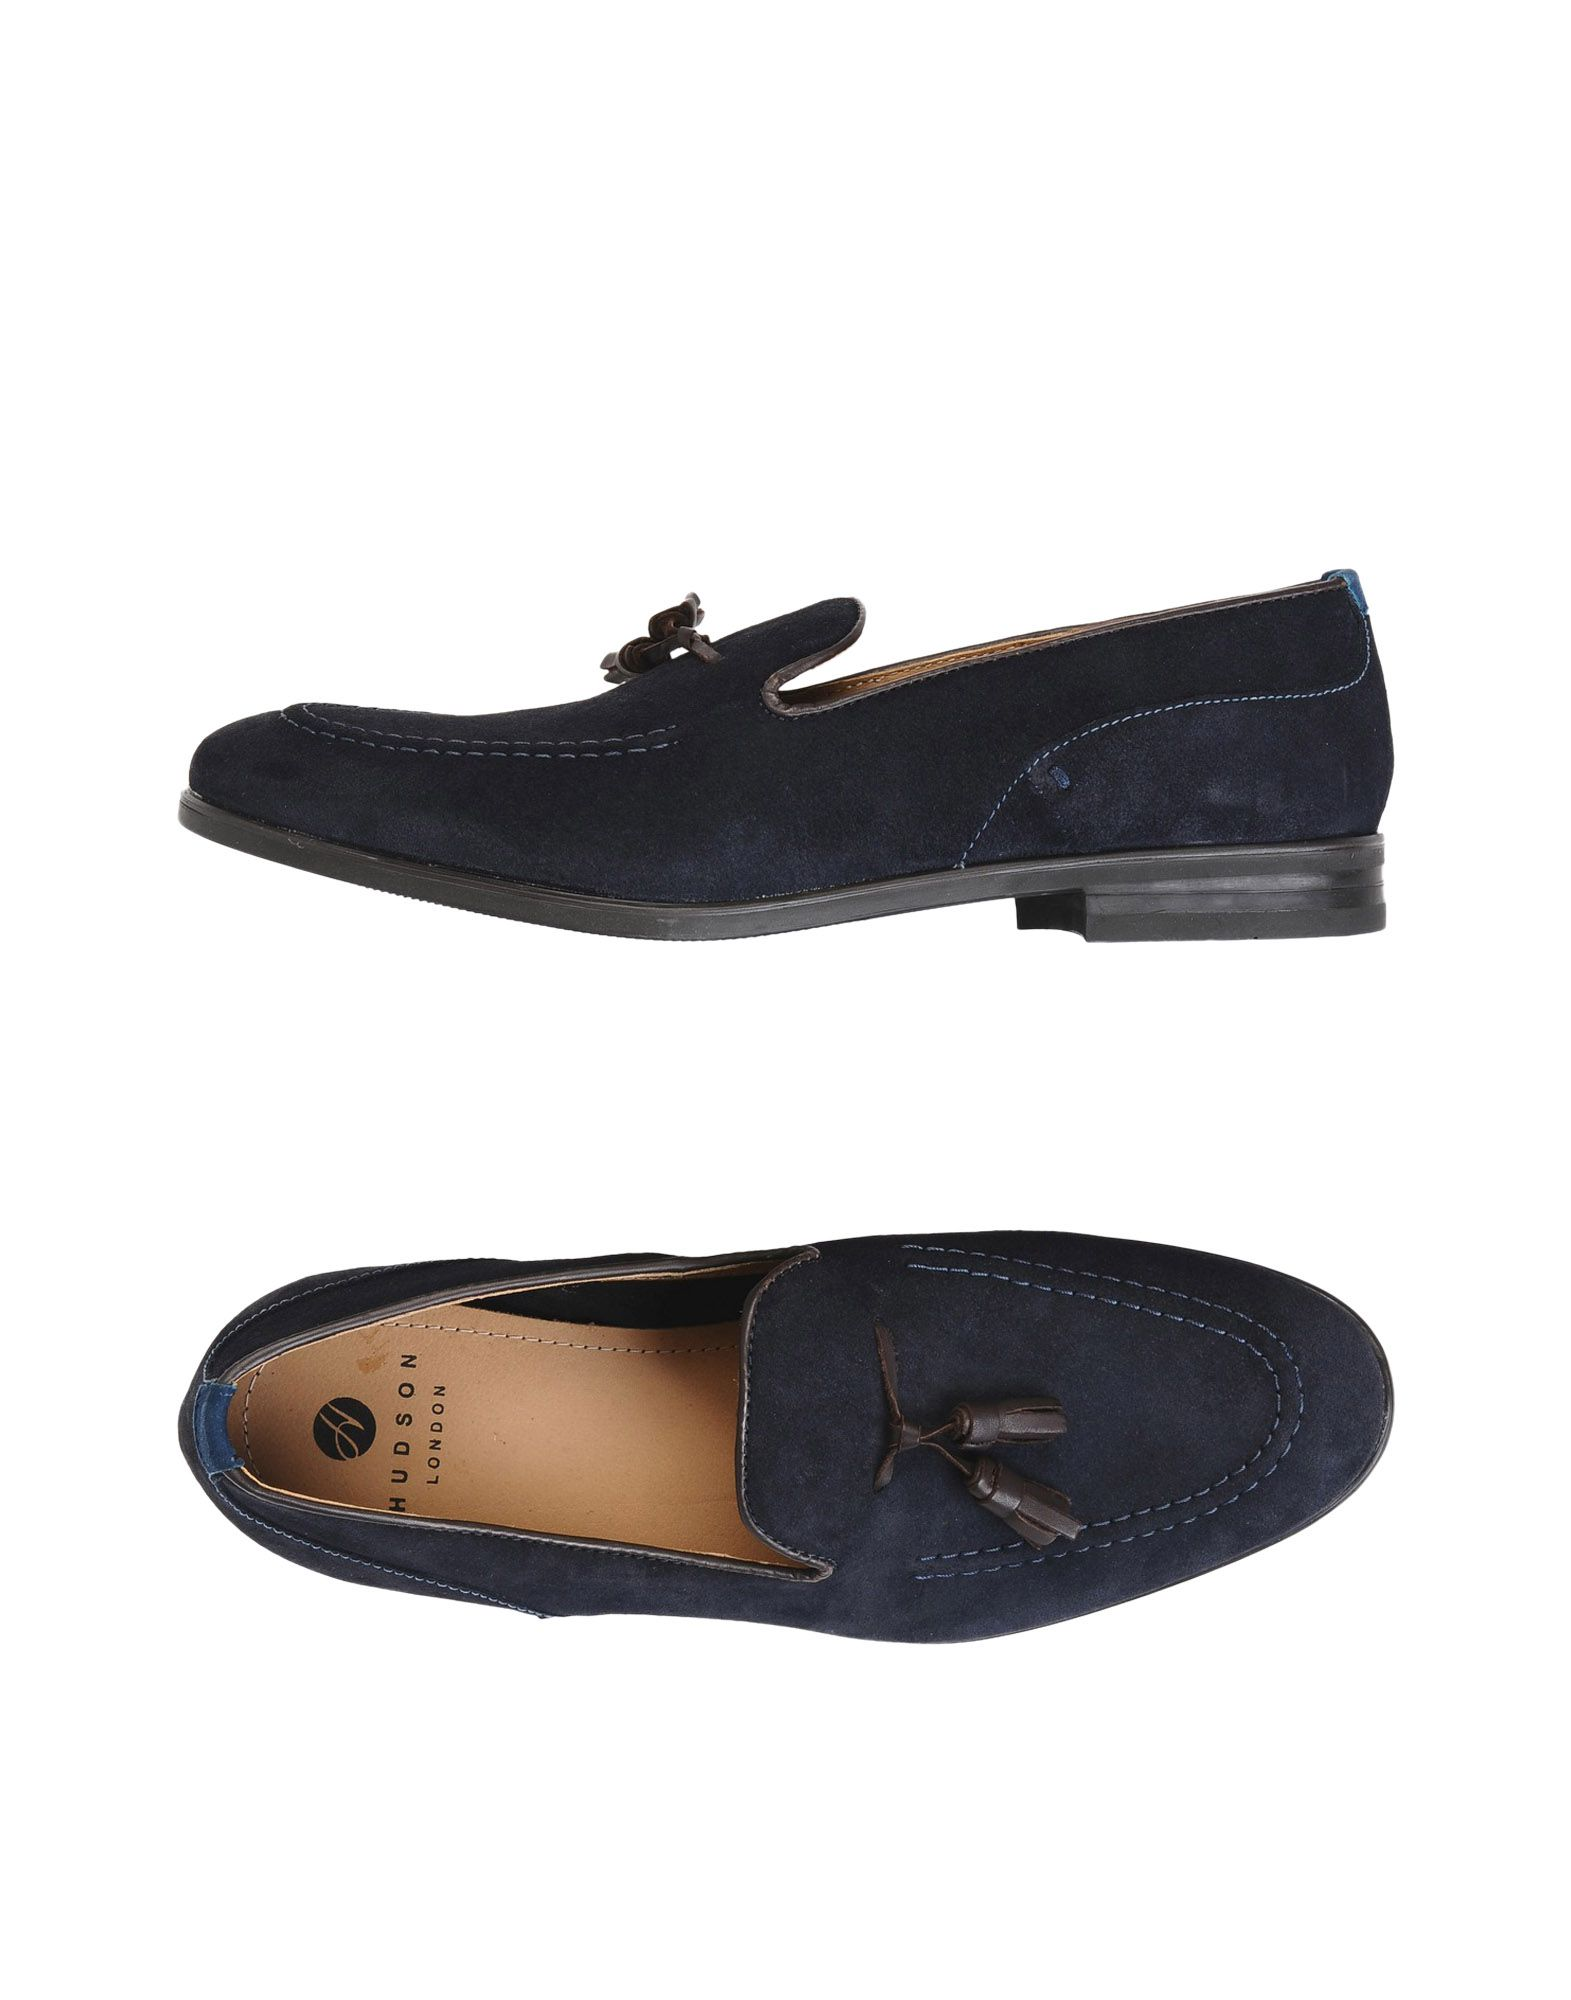 H BY HUDSON Loafers in Dark Blue